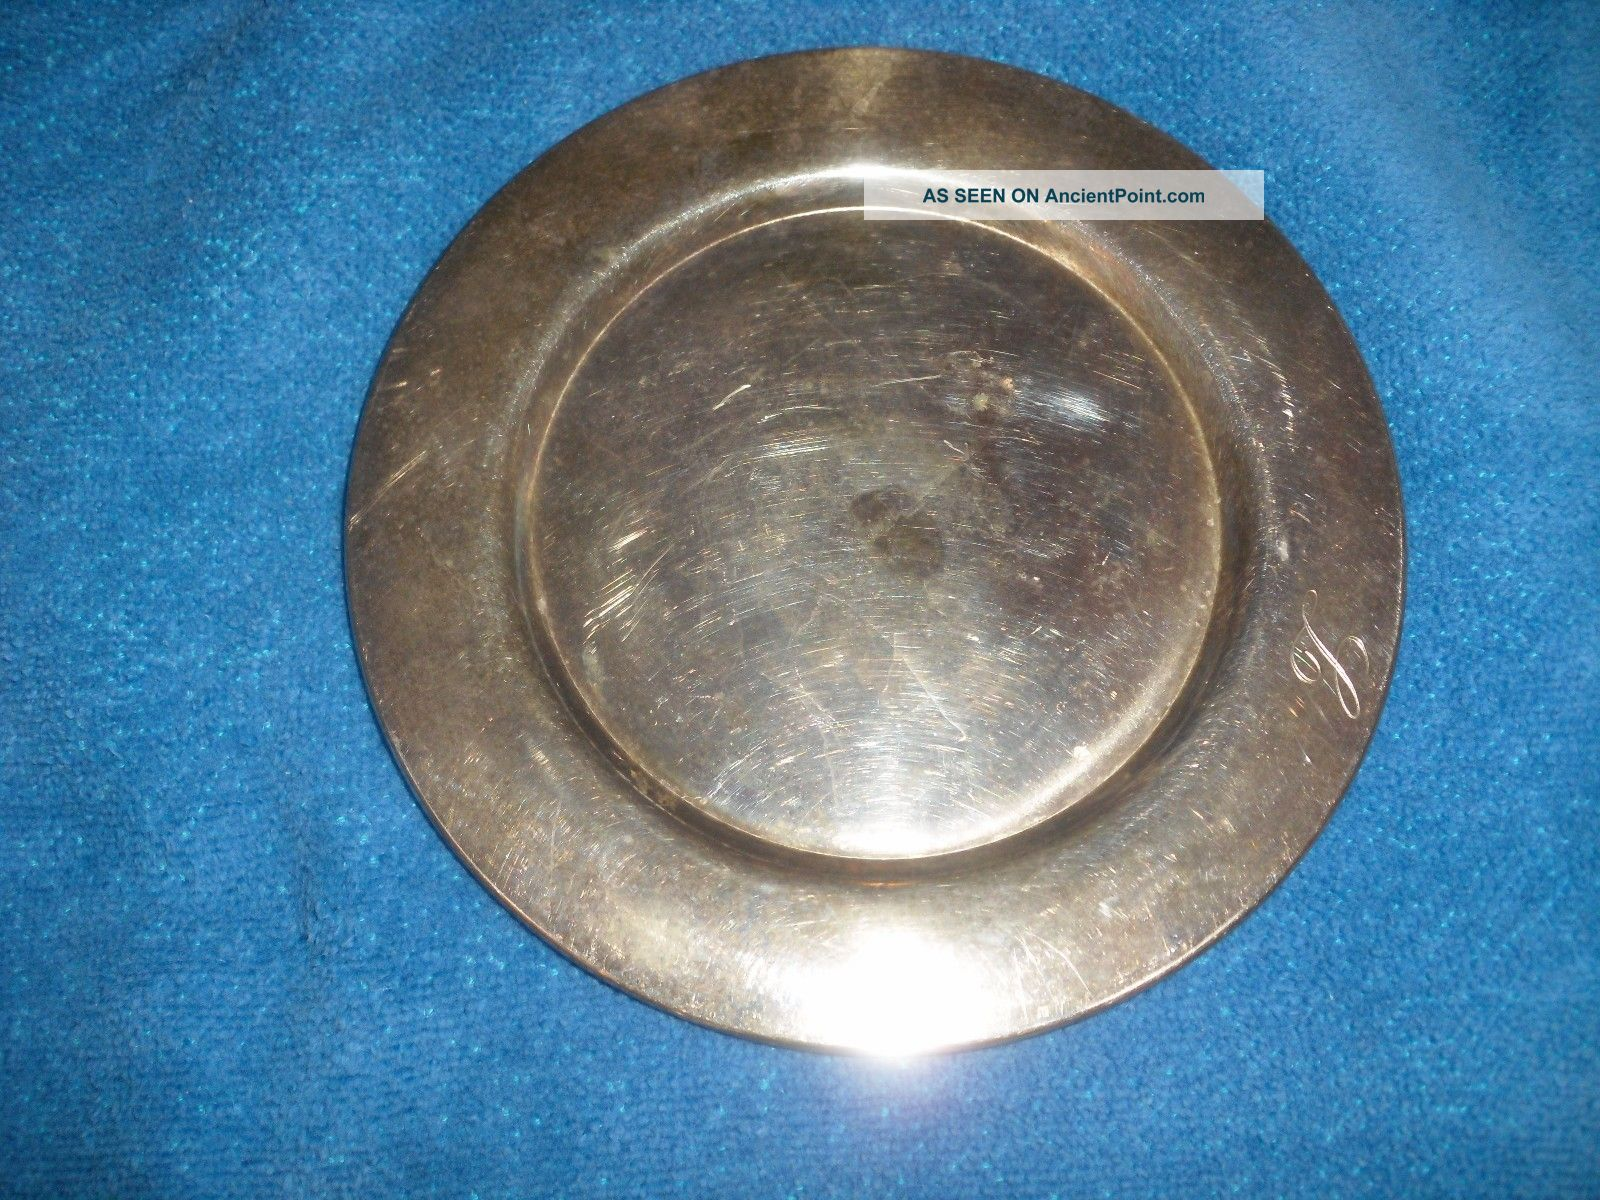 Antique Silver Small Plate By Oneida - Wm.  A.  Rogers - 6 Inch In Diameter Oneida/Wm. A. Rogers photo